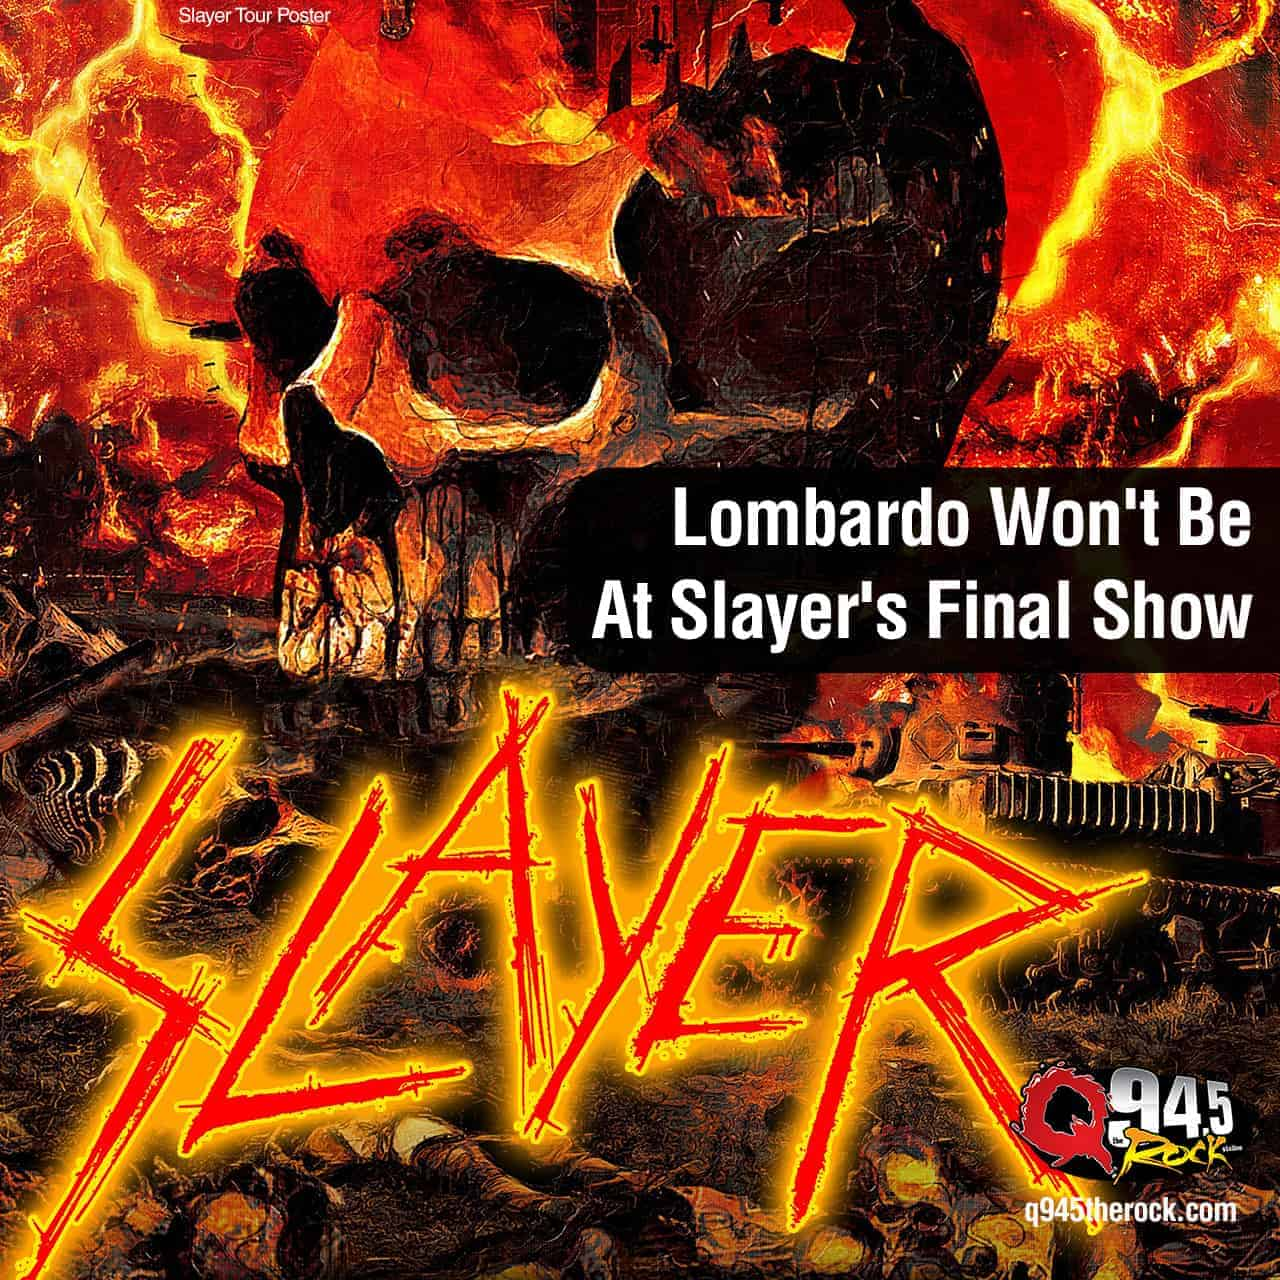 Lombardo Won't Be At Slayer's Final Show